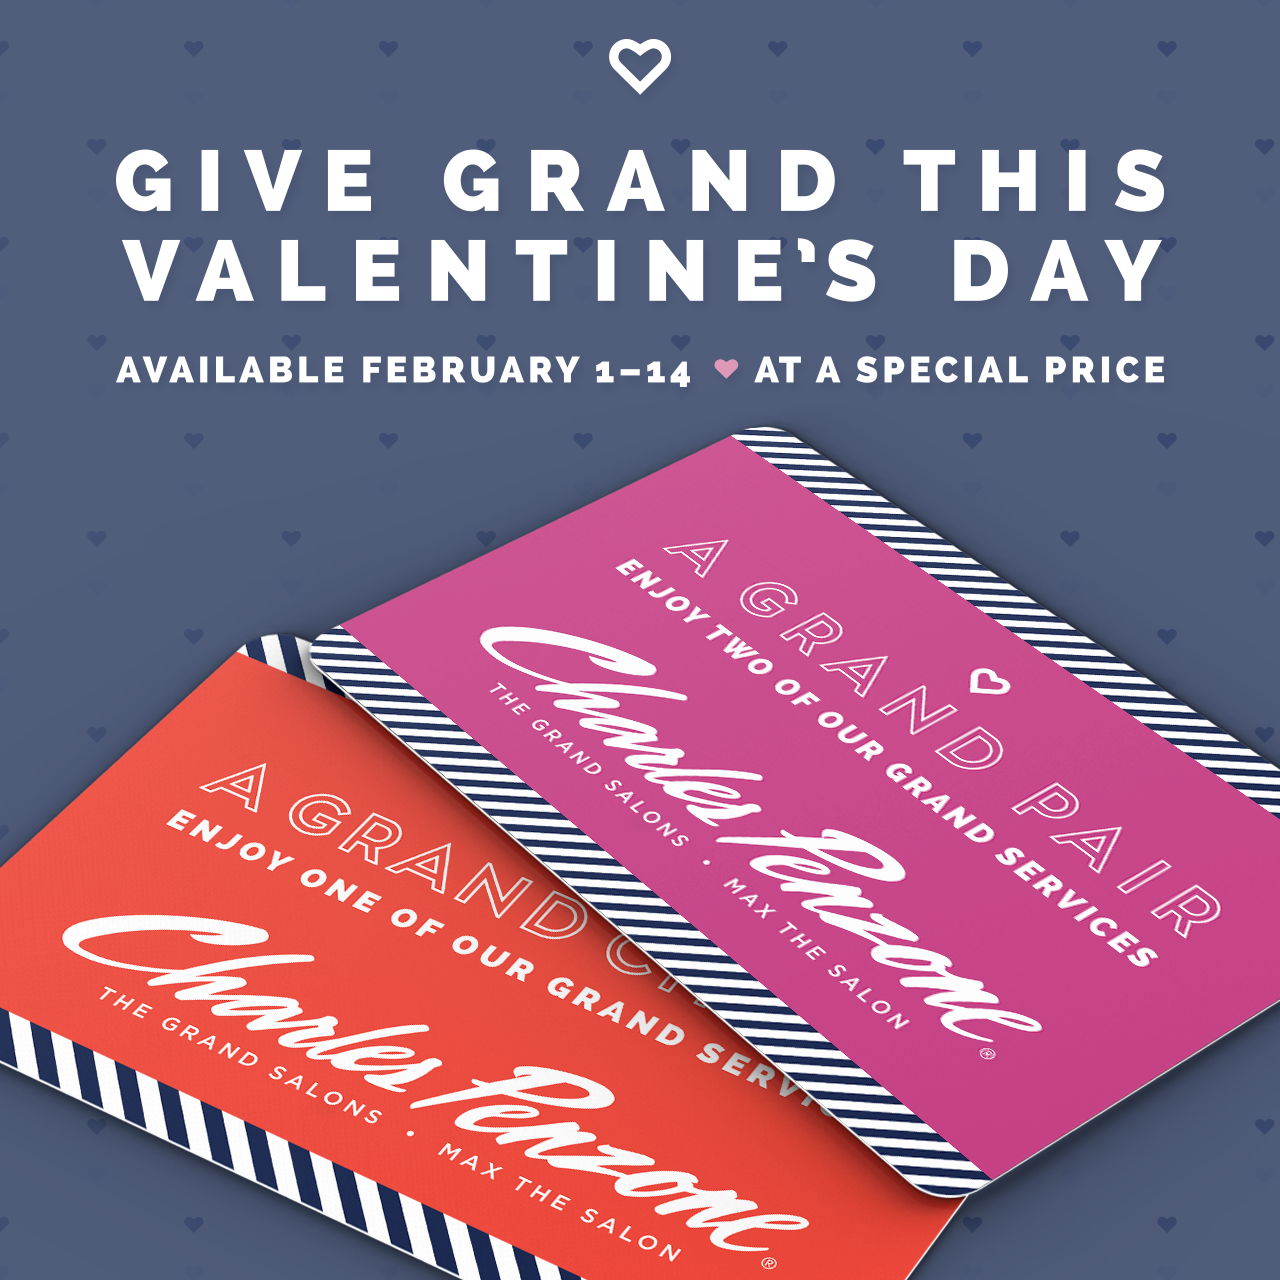 Give our very best this Valentine's Day. Choose a Grand experience at a special price. Available for purchase February 1–14, 2016.